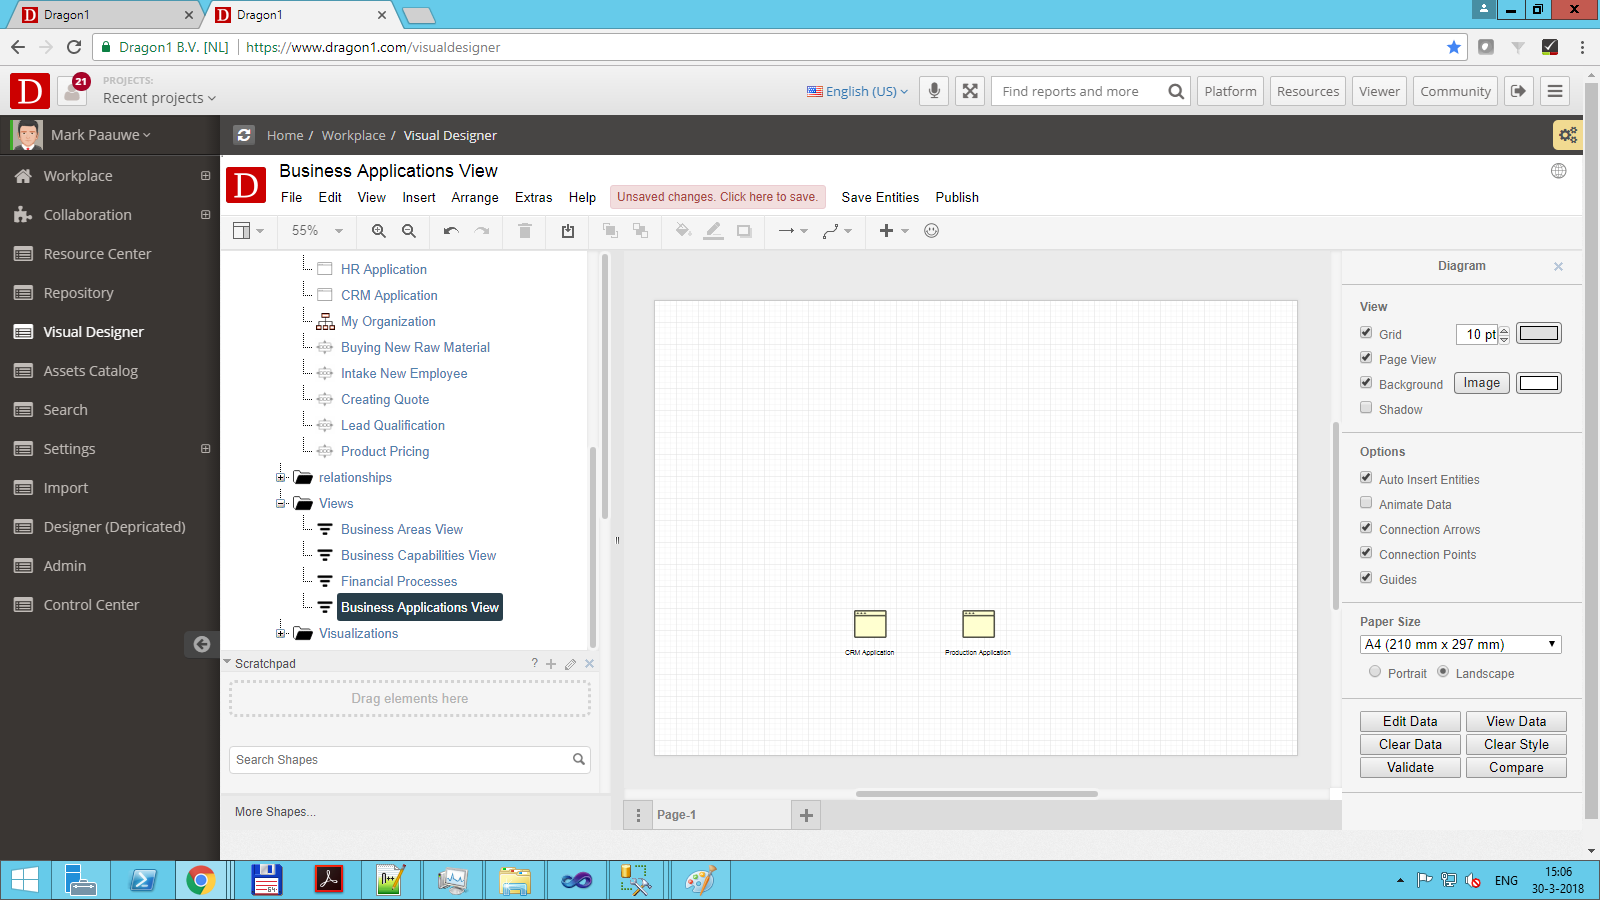 dragon1 view view filters out everything that is not referenced as business application